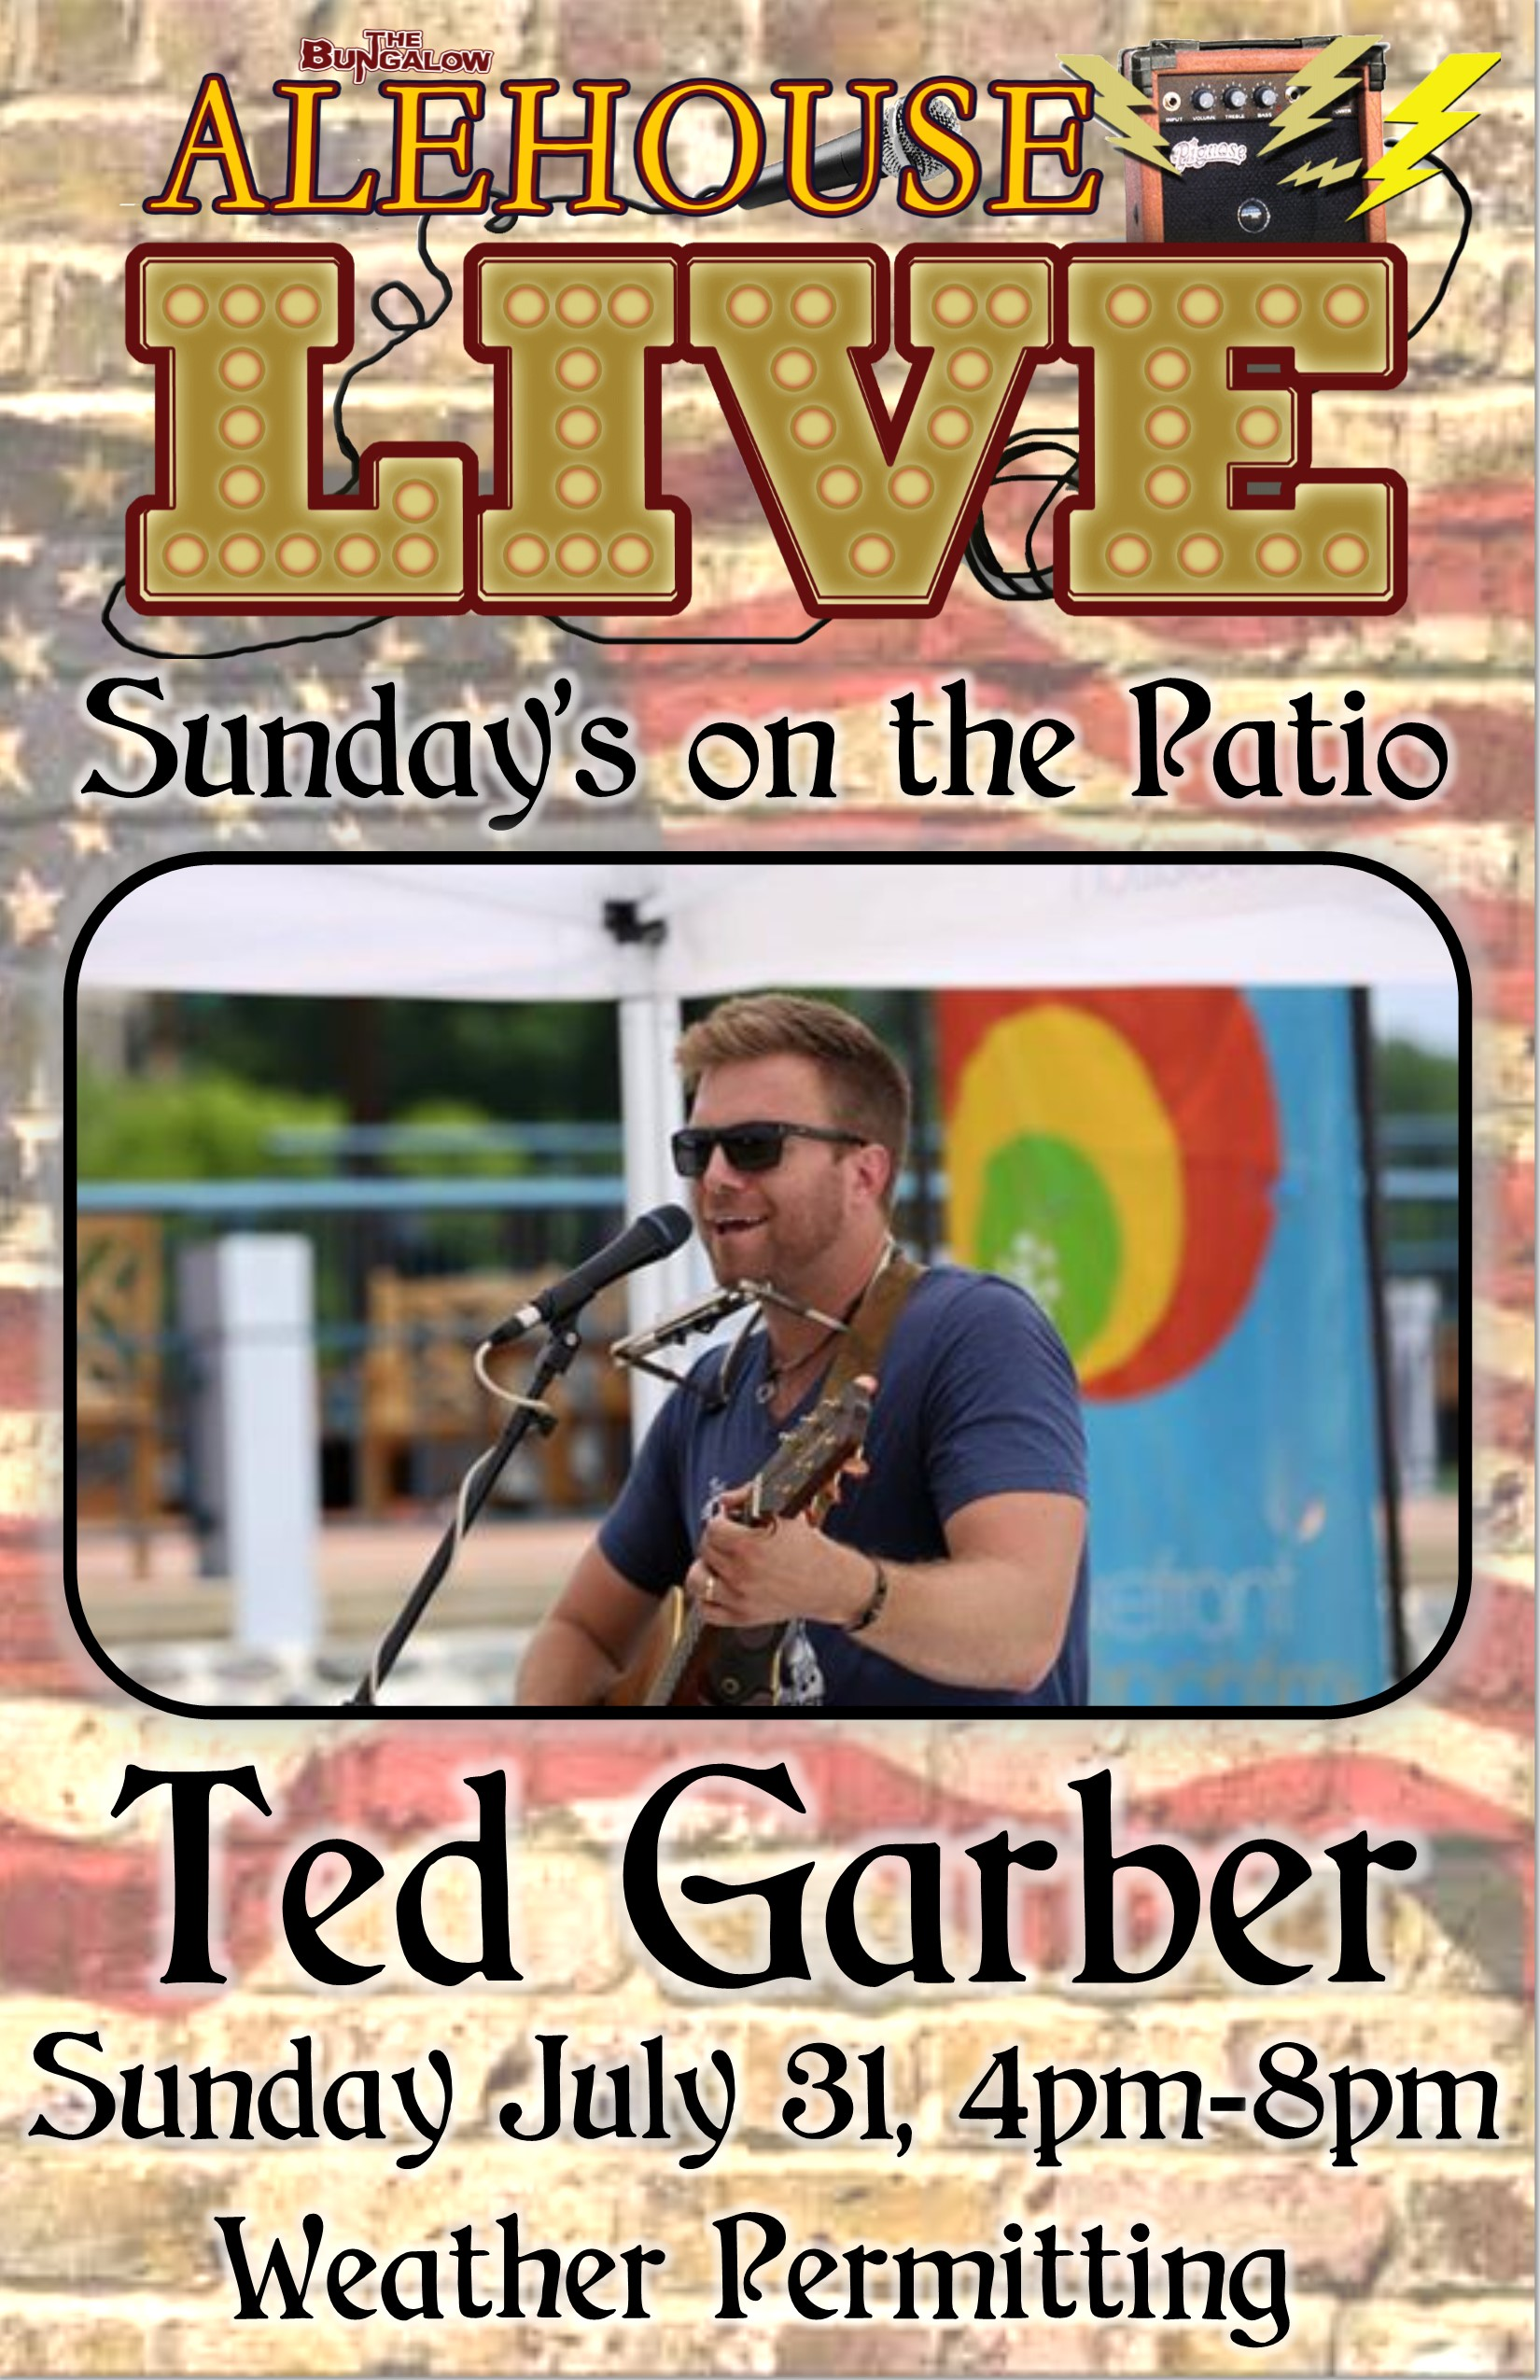 ted garber PM Live 11x17